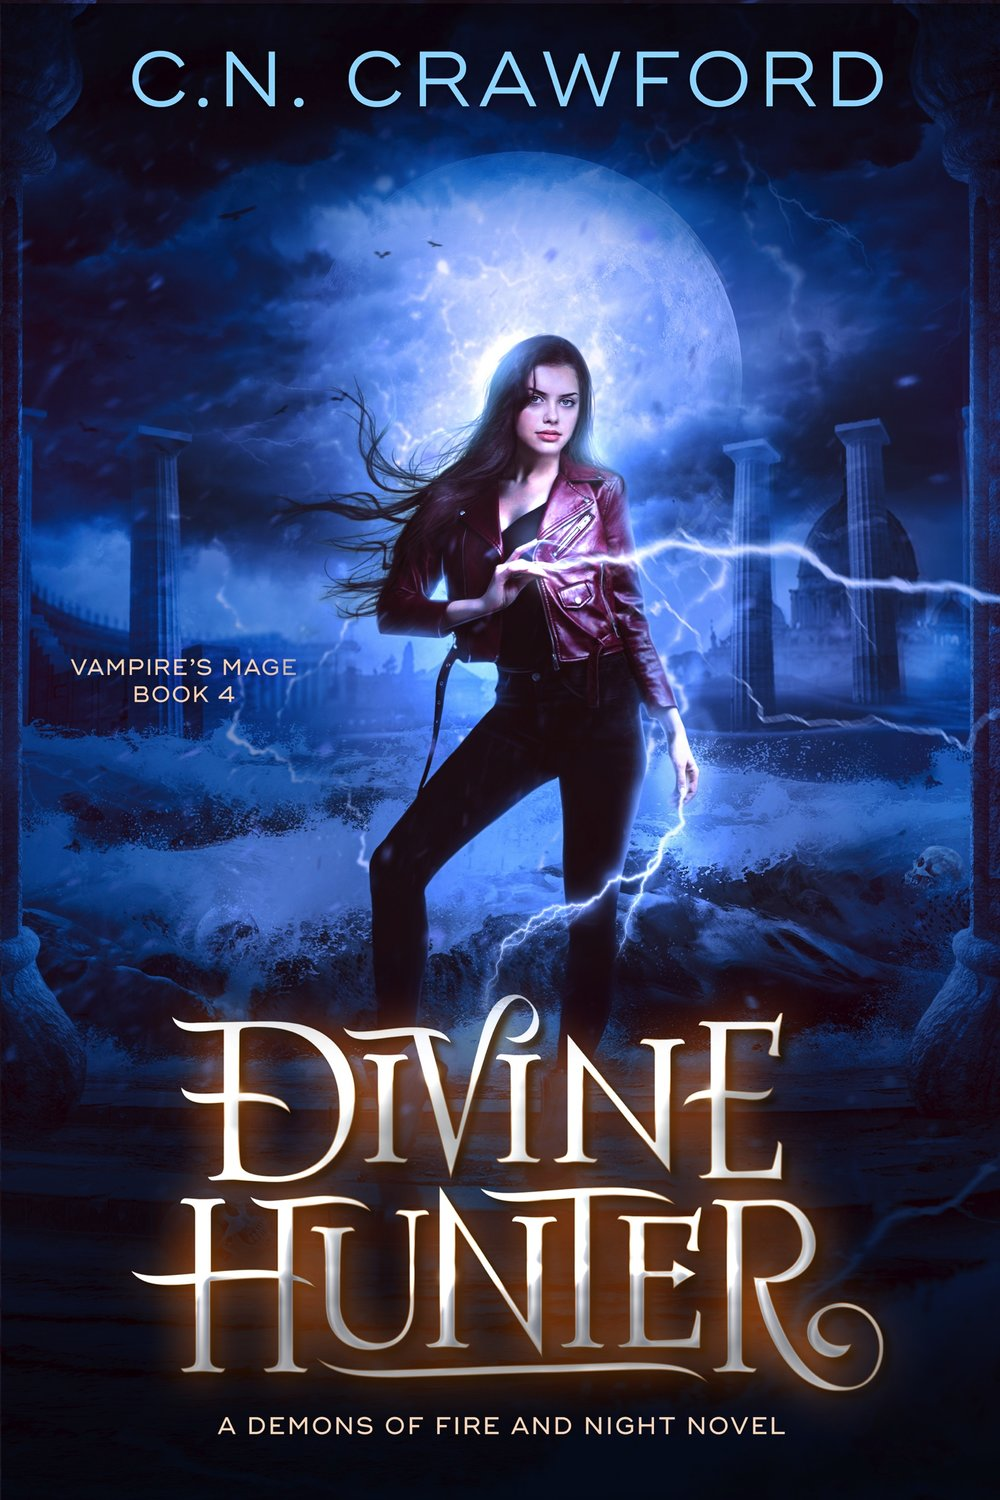 Book 4: Divine Hunter